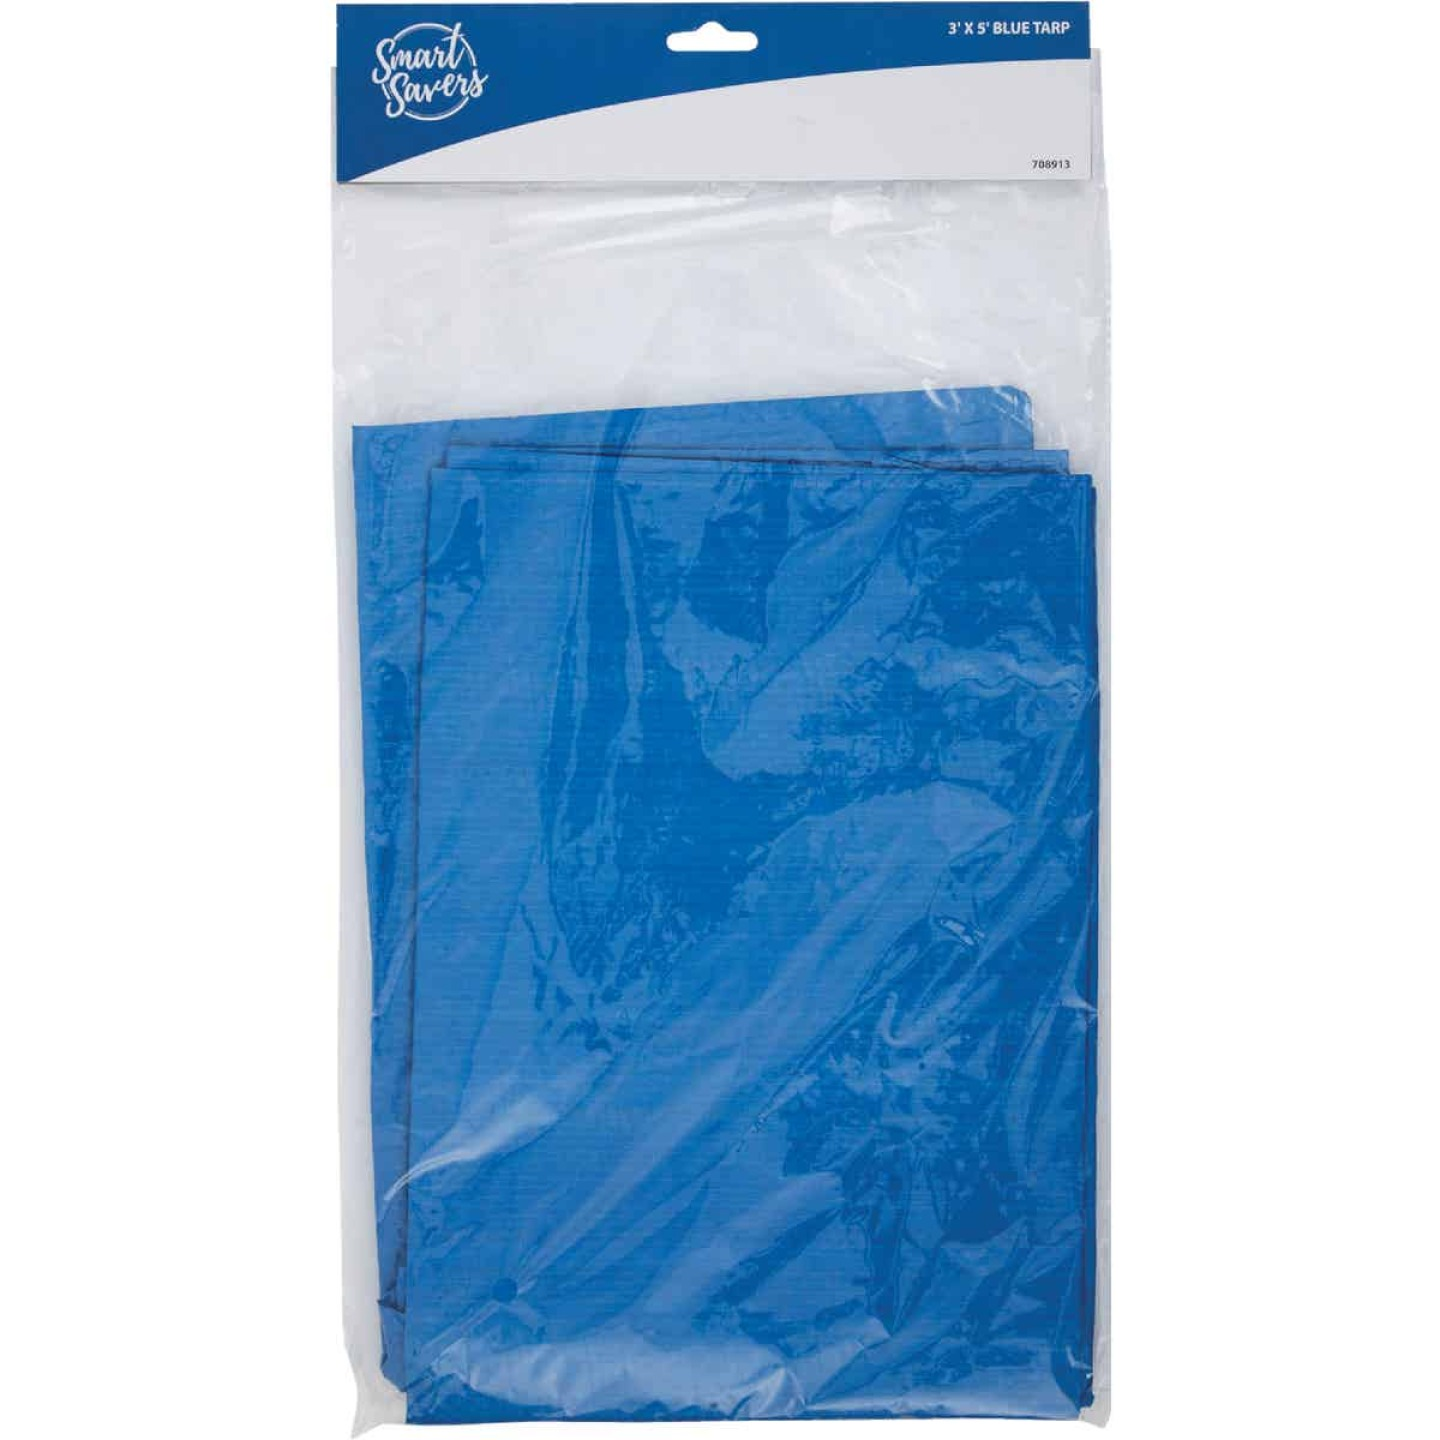 Smart Savers Blue PE 3 Ft. x 5 Ft. Poly Tarp Image 1